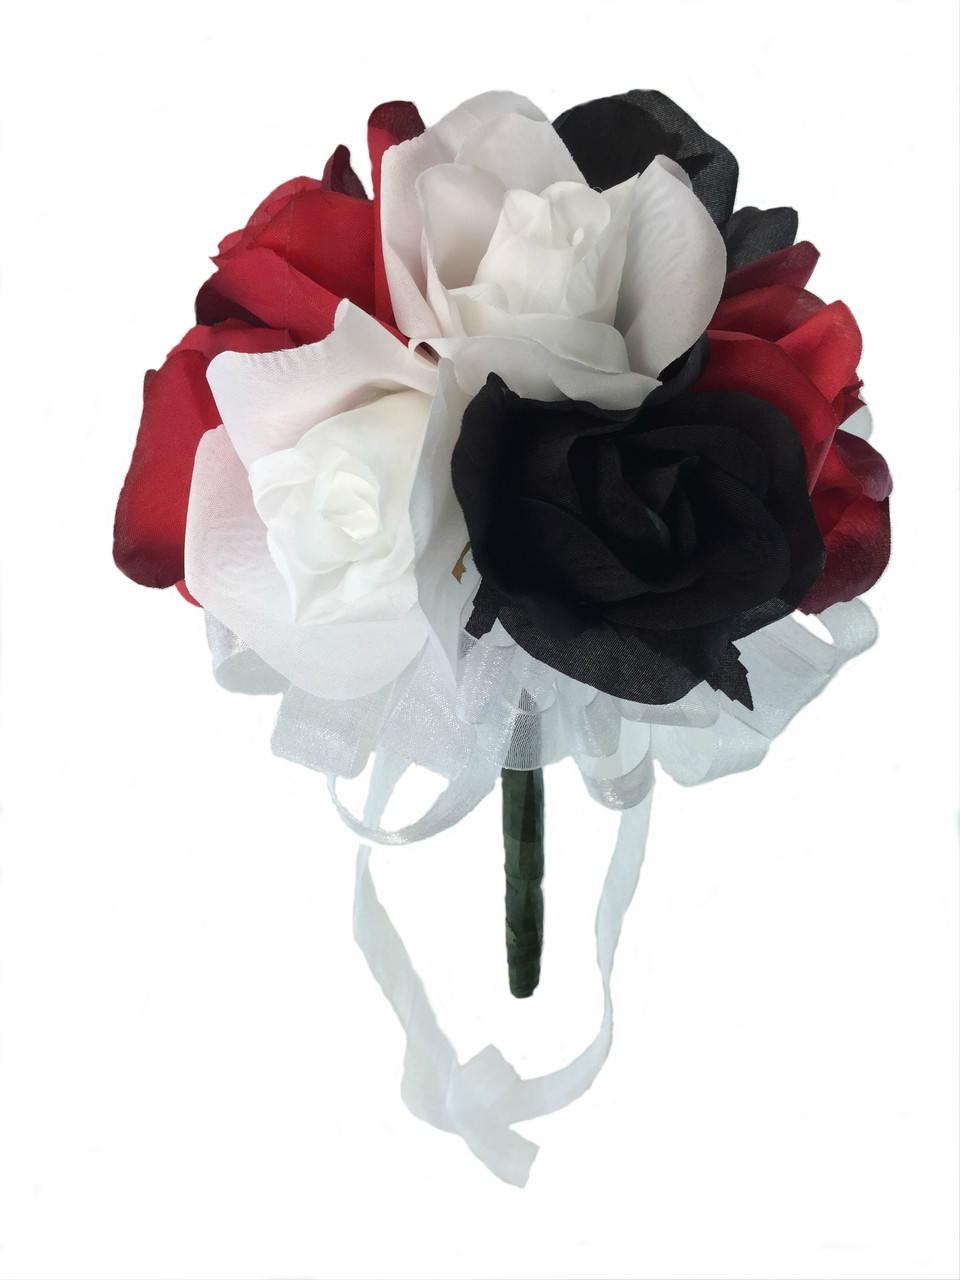 Red White Black Rose Bouquet Wedding Bouquet Toss Cheap Bridesmaid Bouquets Silk Wedding Flowers Artificial Wedding Bouquets One Dozen Roses Thebridesbouquet Com